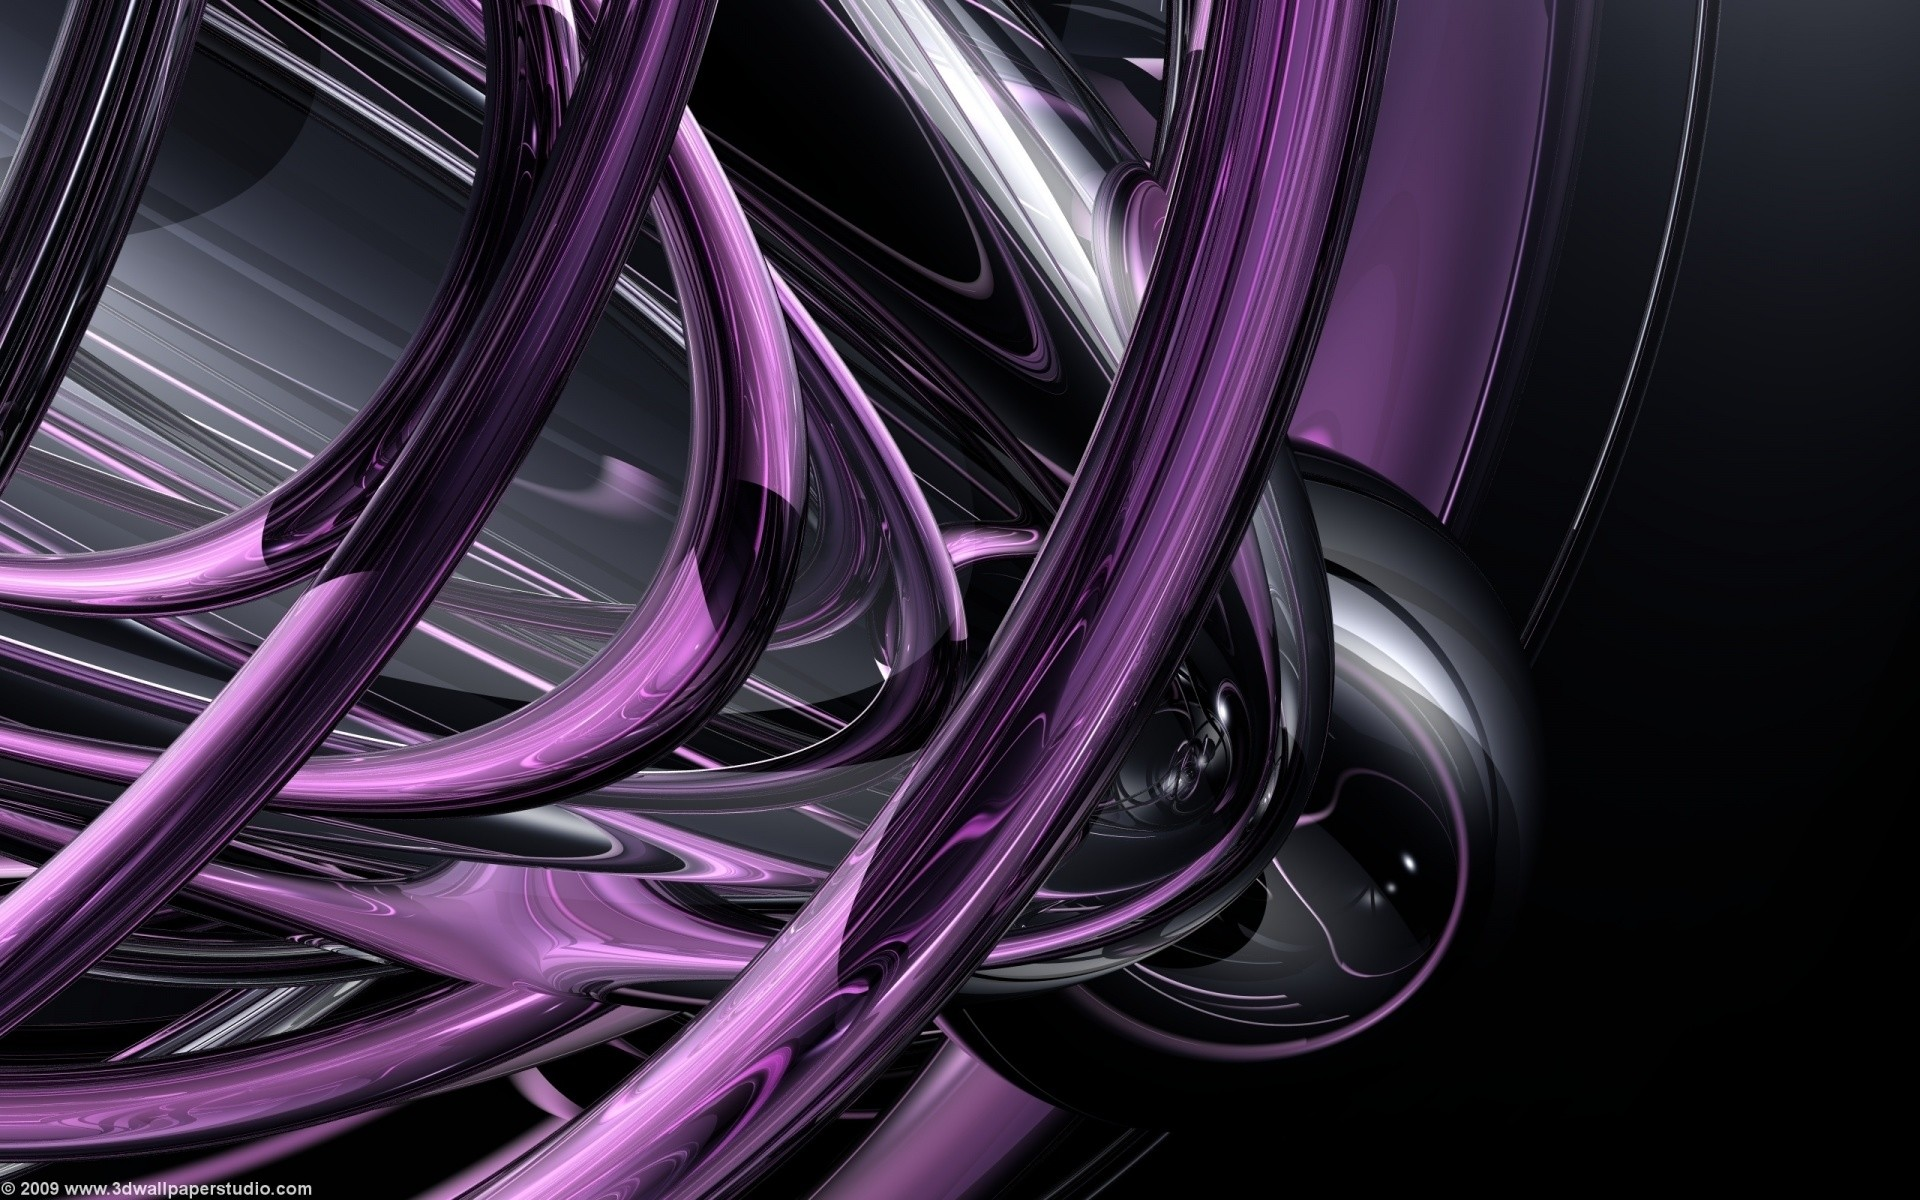 1920x1200 purple abstract high definition hd wallpaper